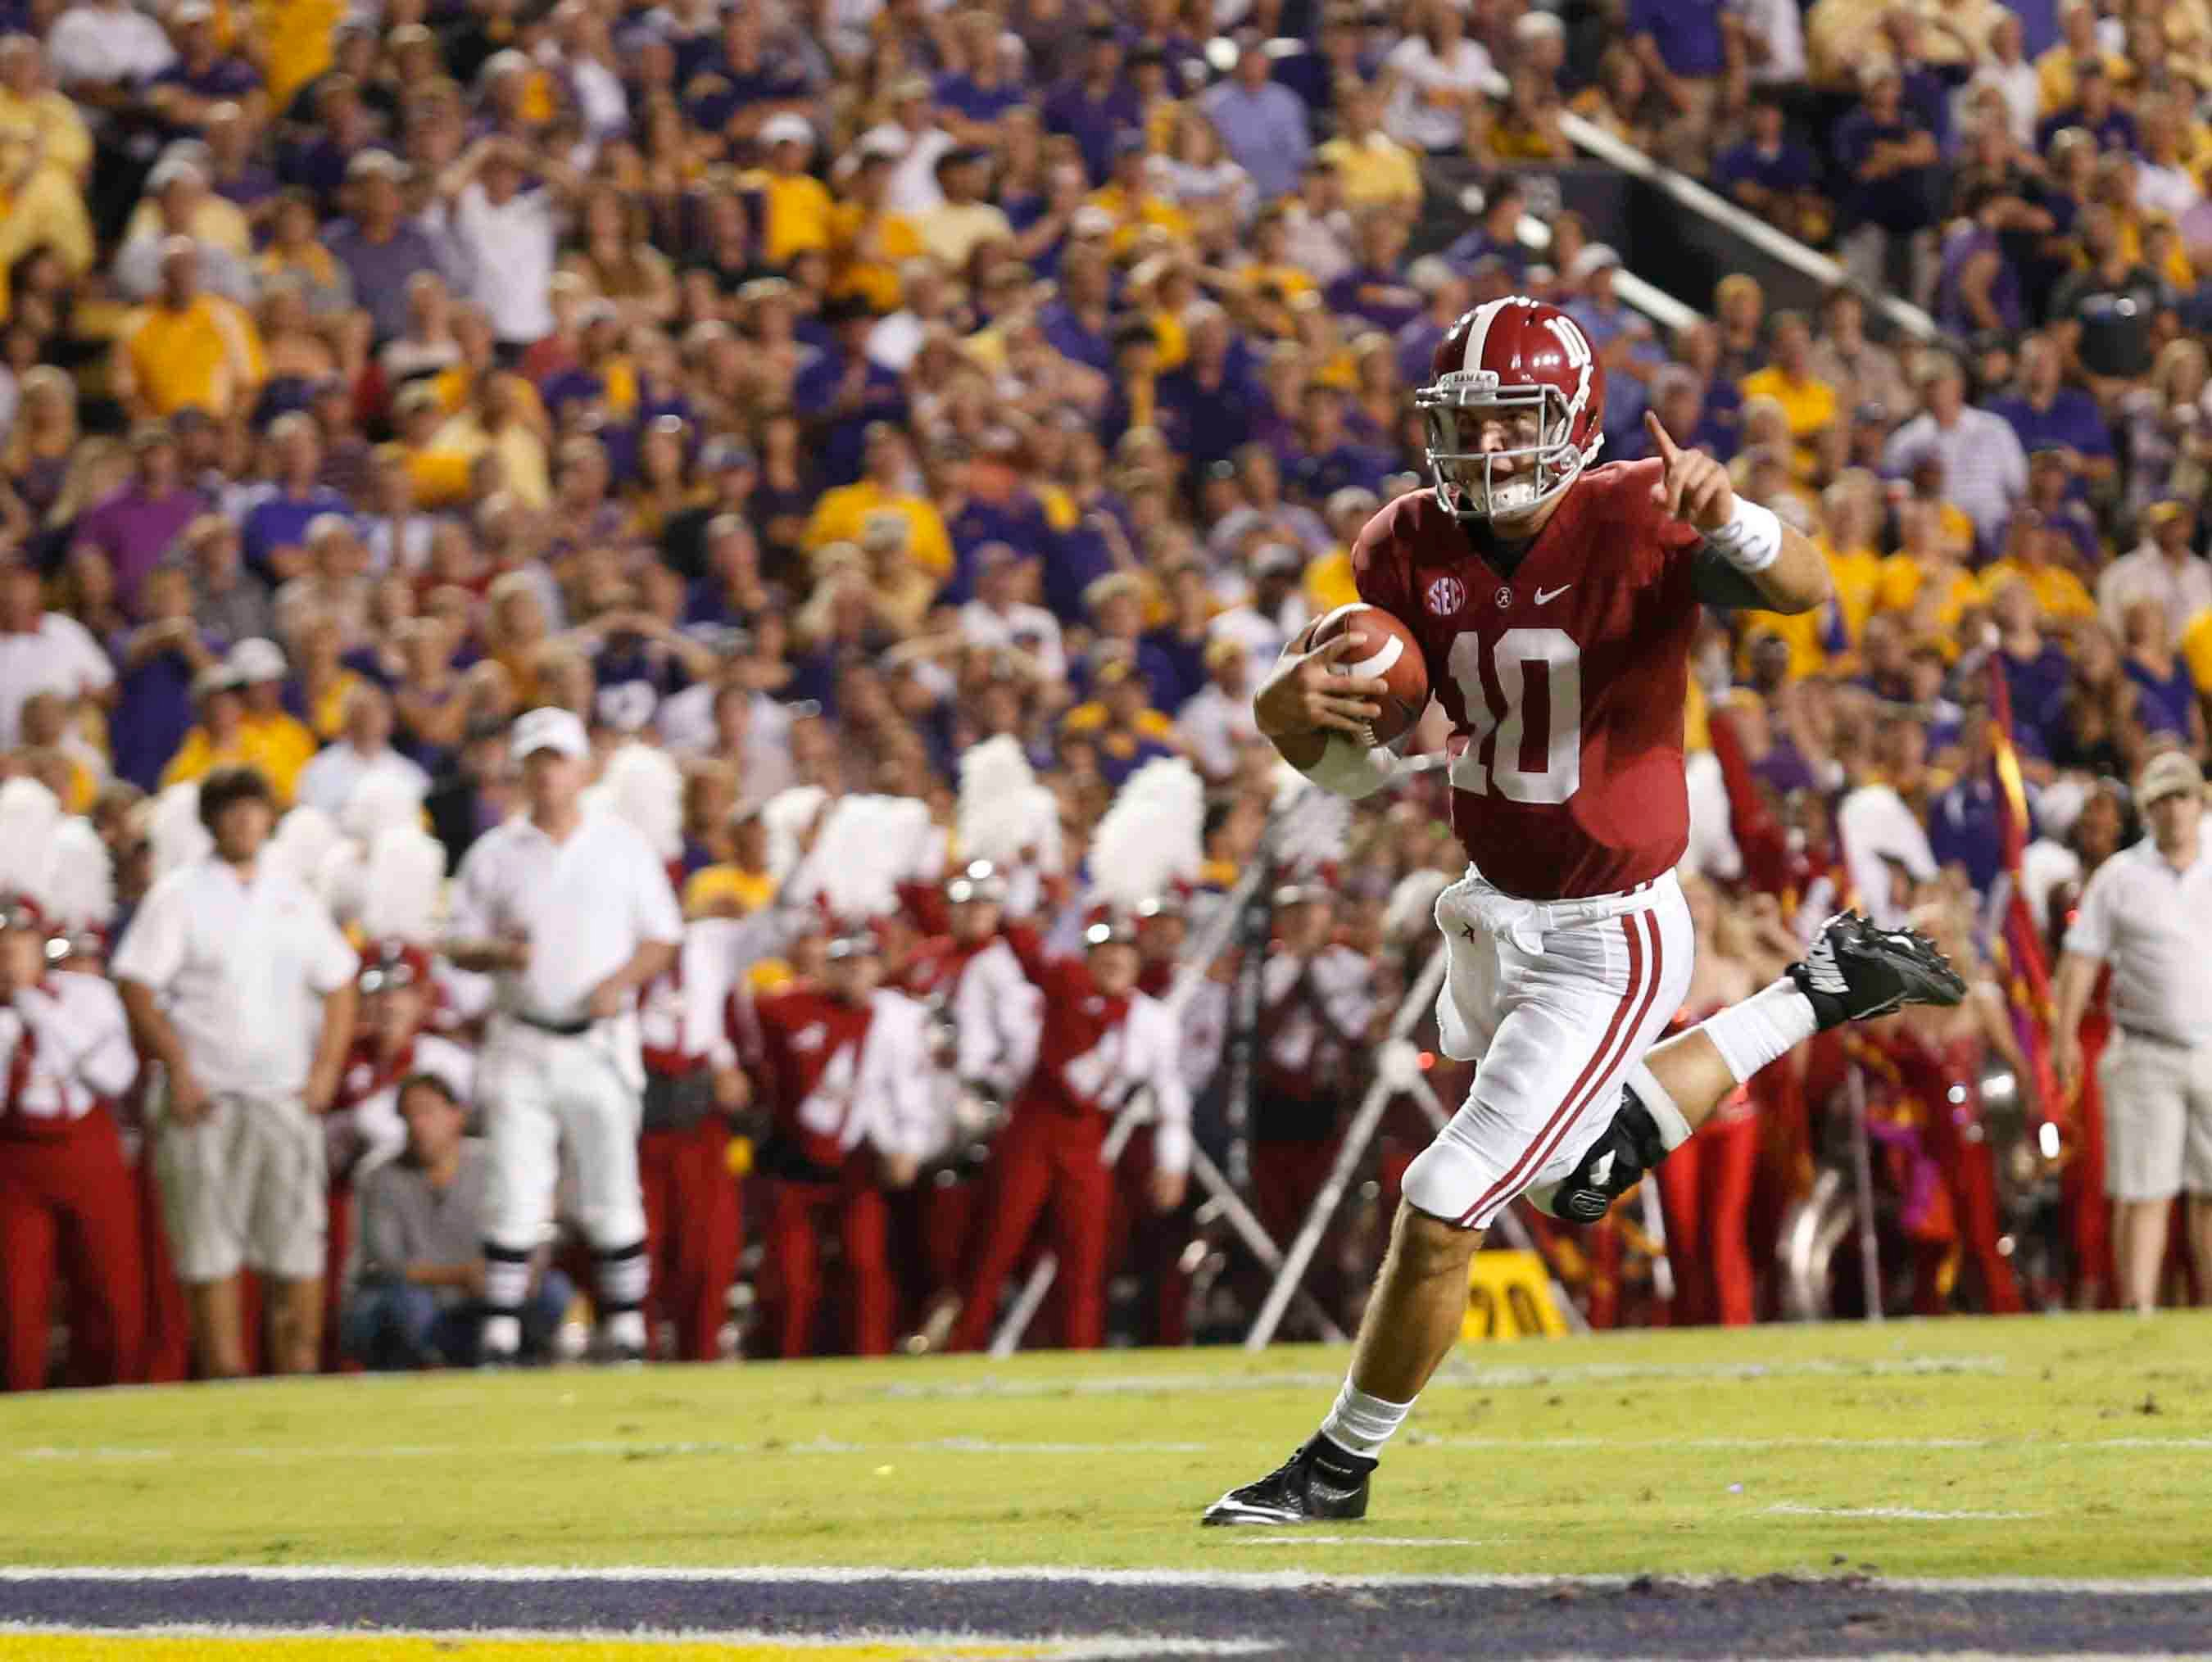 Alabama quarterback AJ McCarron runs for a touchdown against LSU in 2012. (Source: Alabama Athletics)